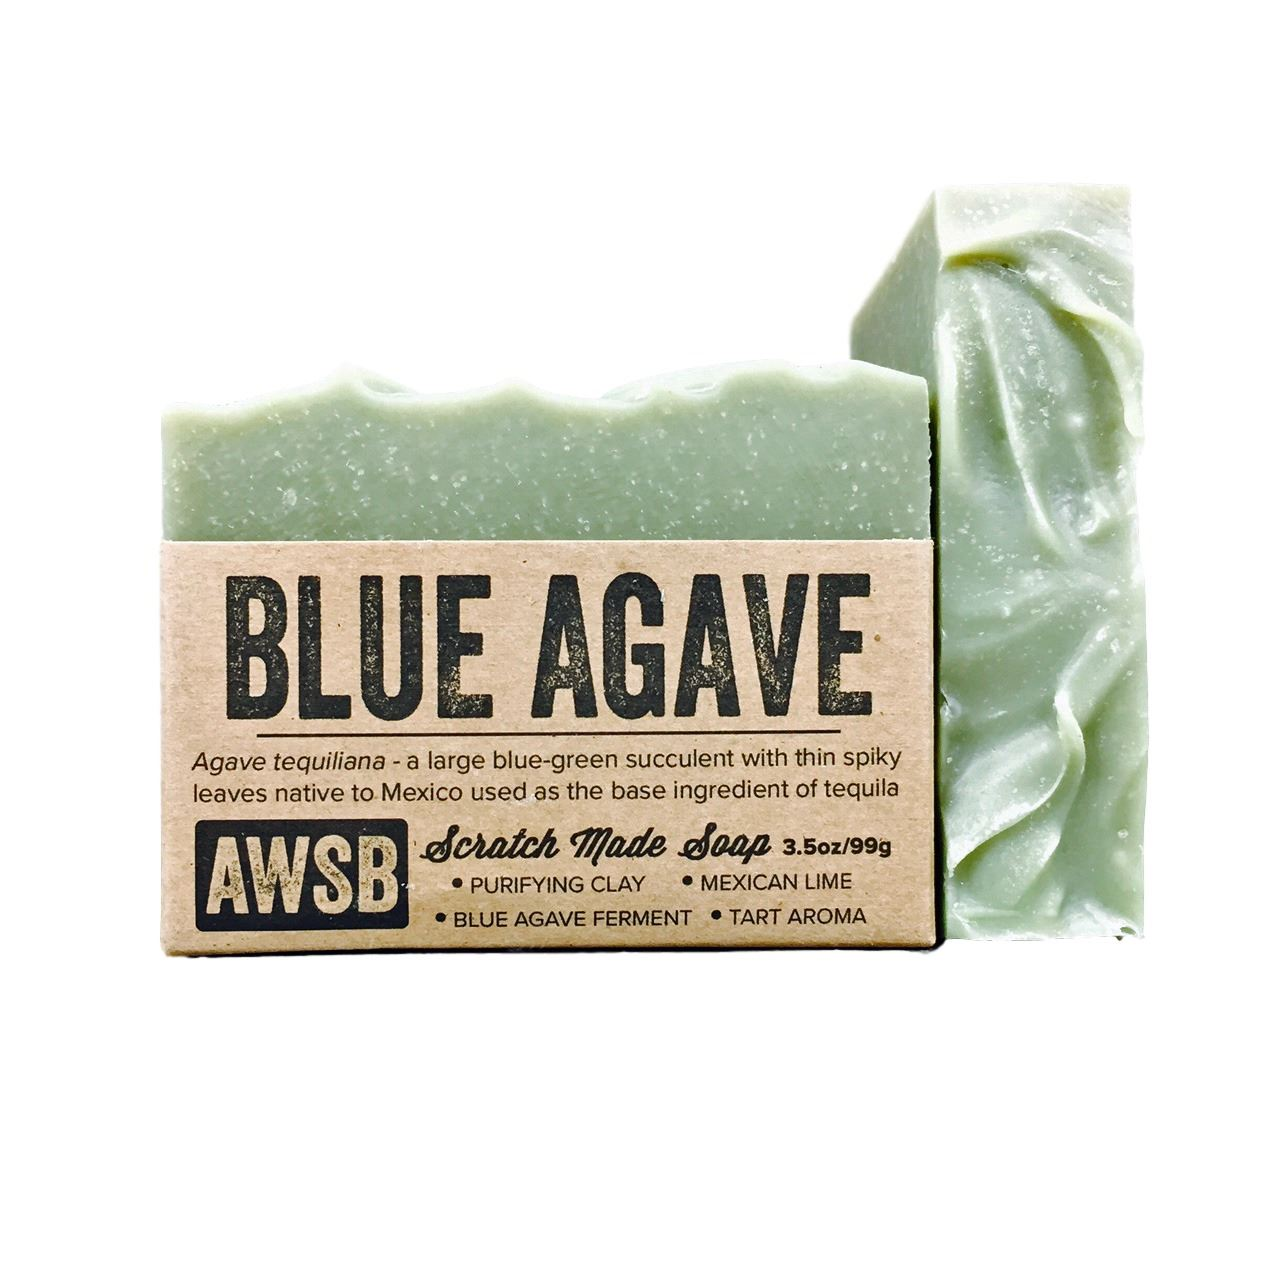 blue agave soap - NEW! agave,blue agave,organic,handmade,lime,blue,tequila,mexican lime